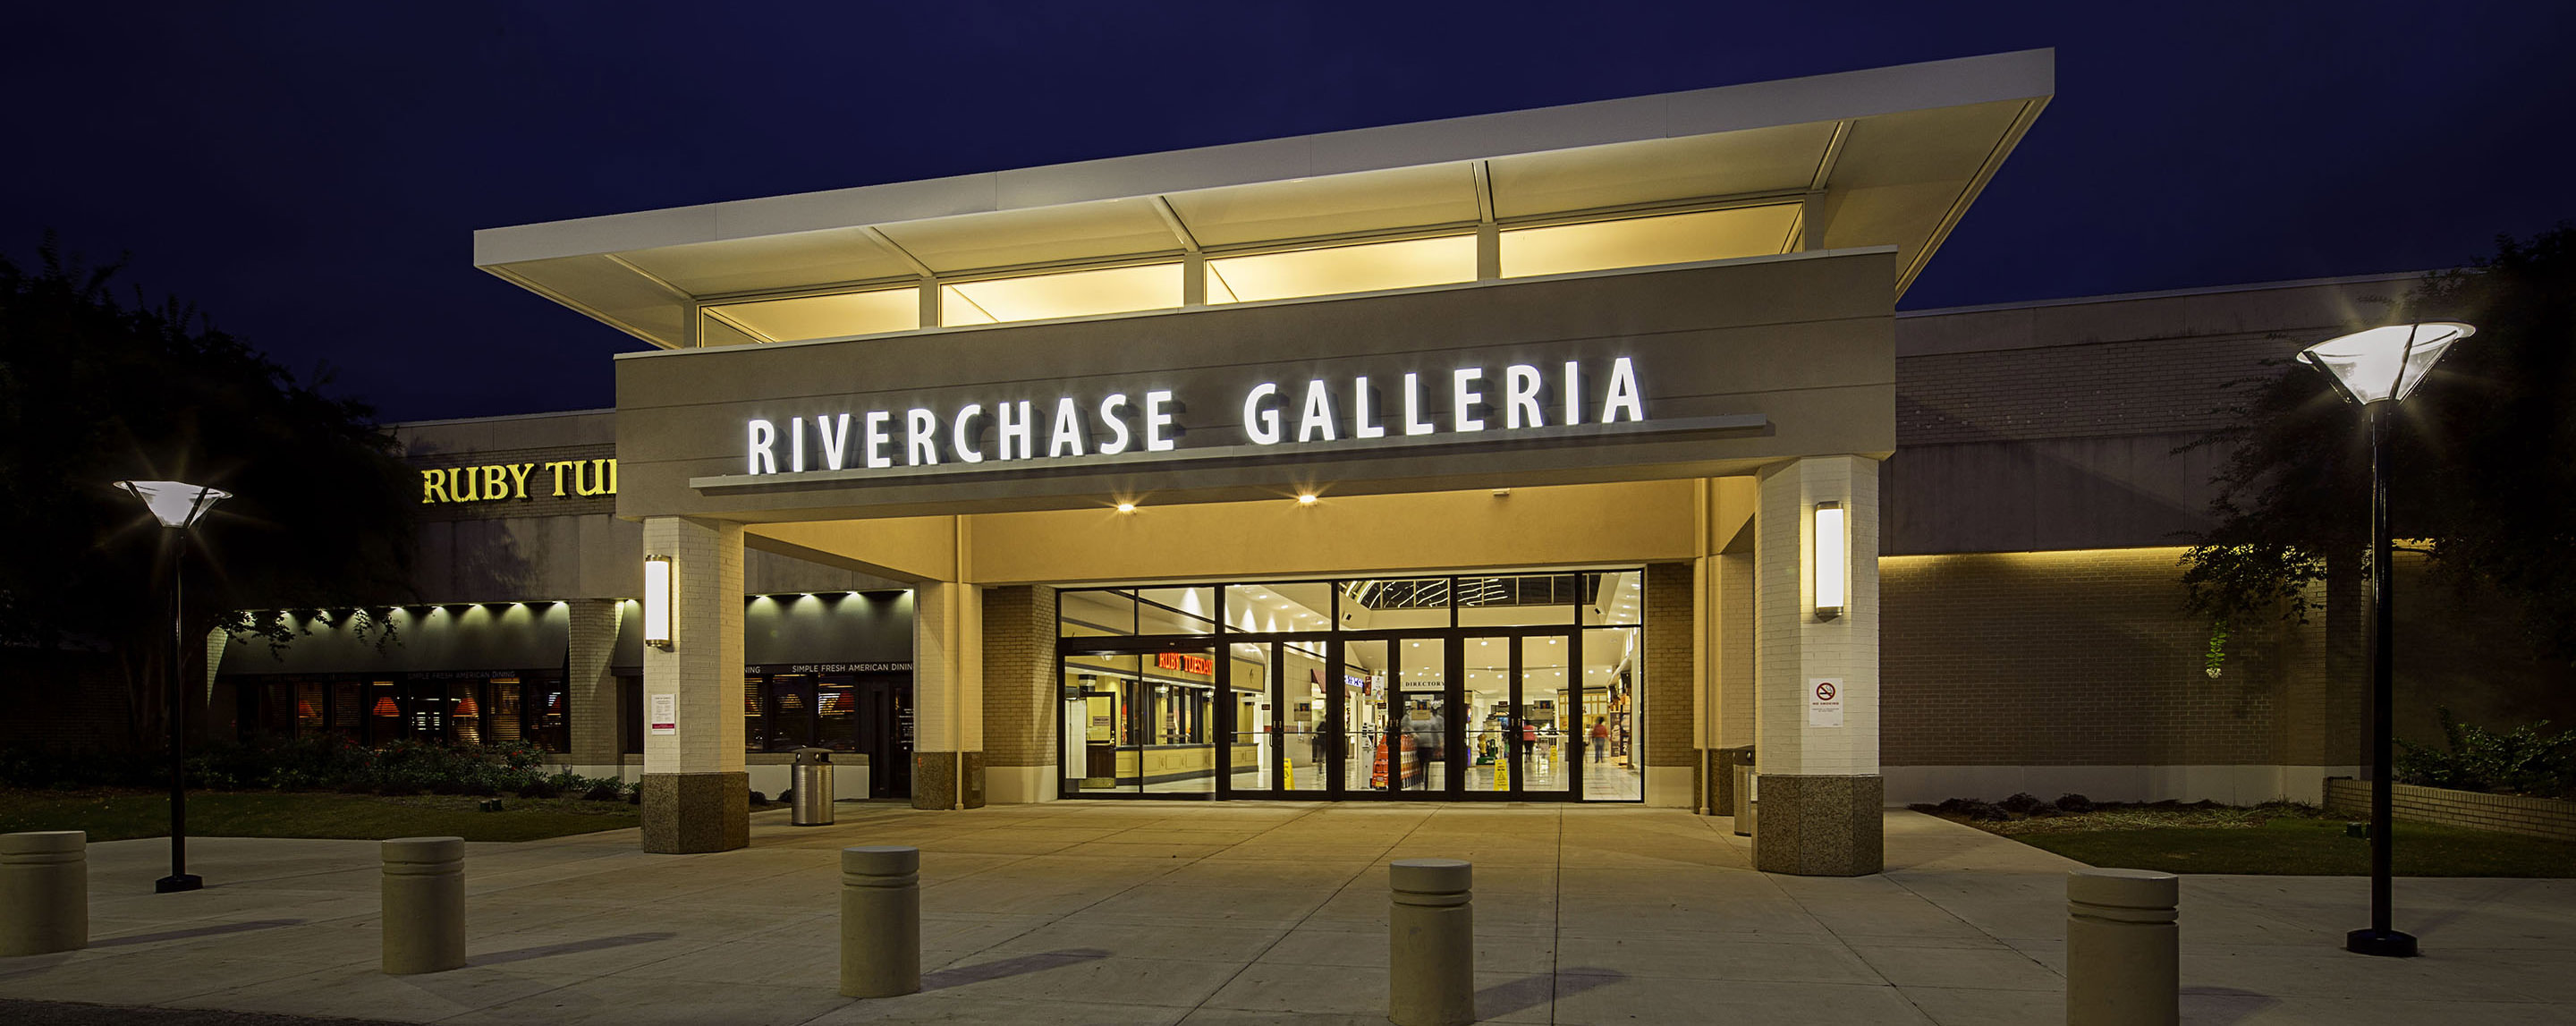 Retail Space For Lease In Birmingham Al Riverchase Galleria